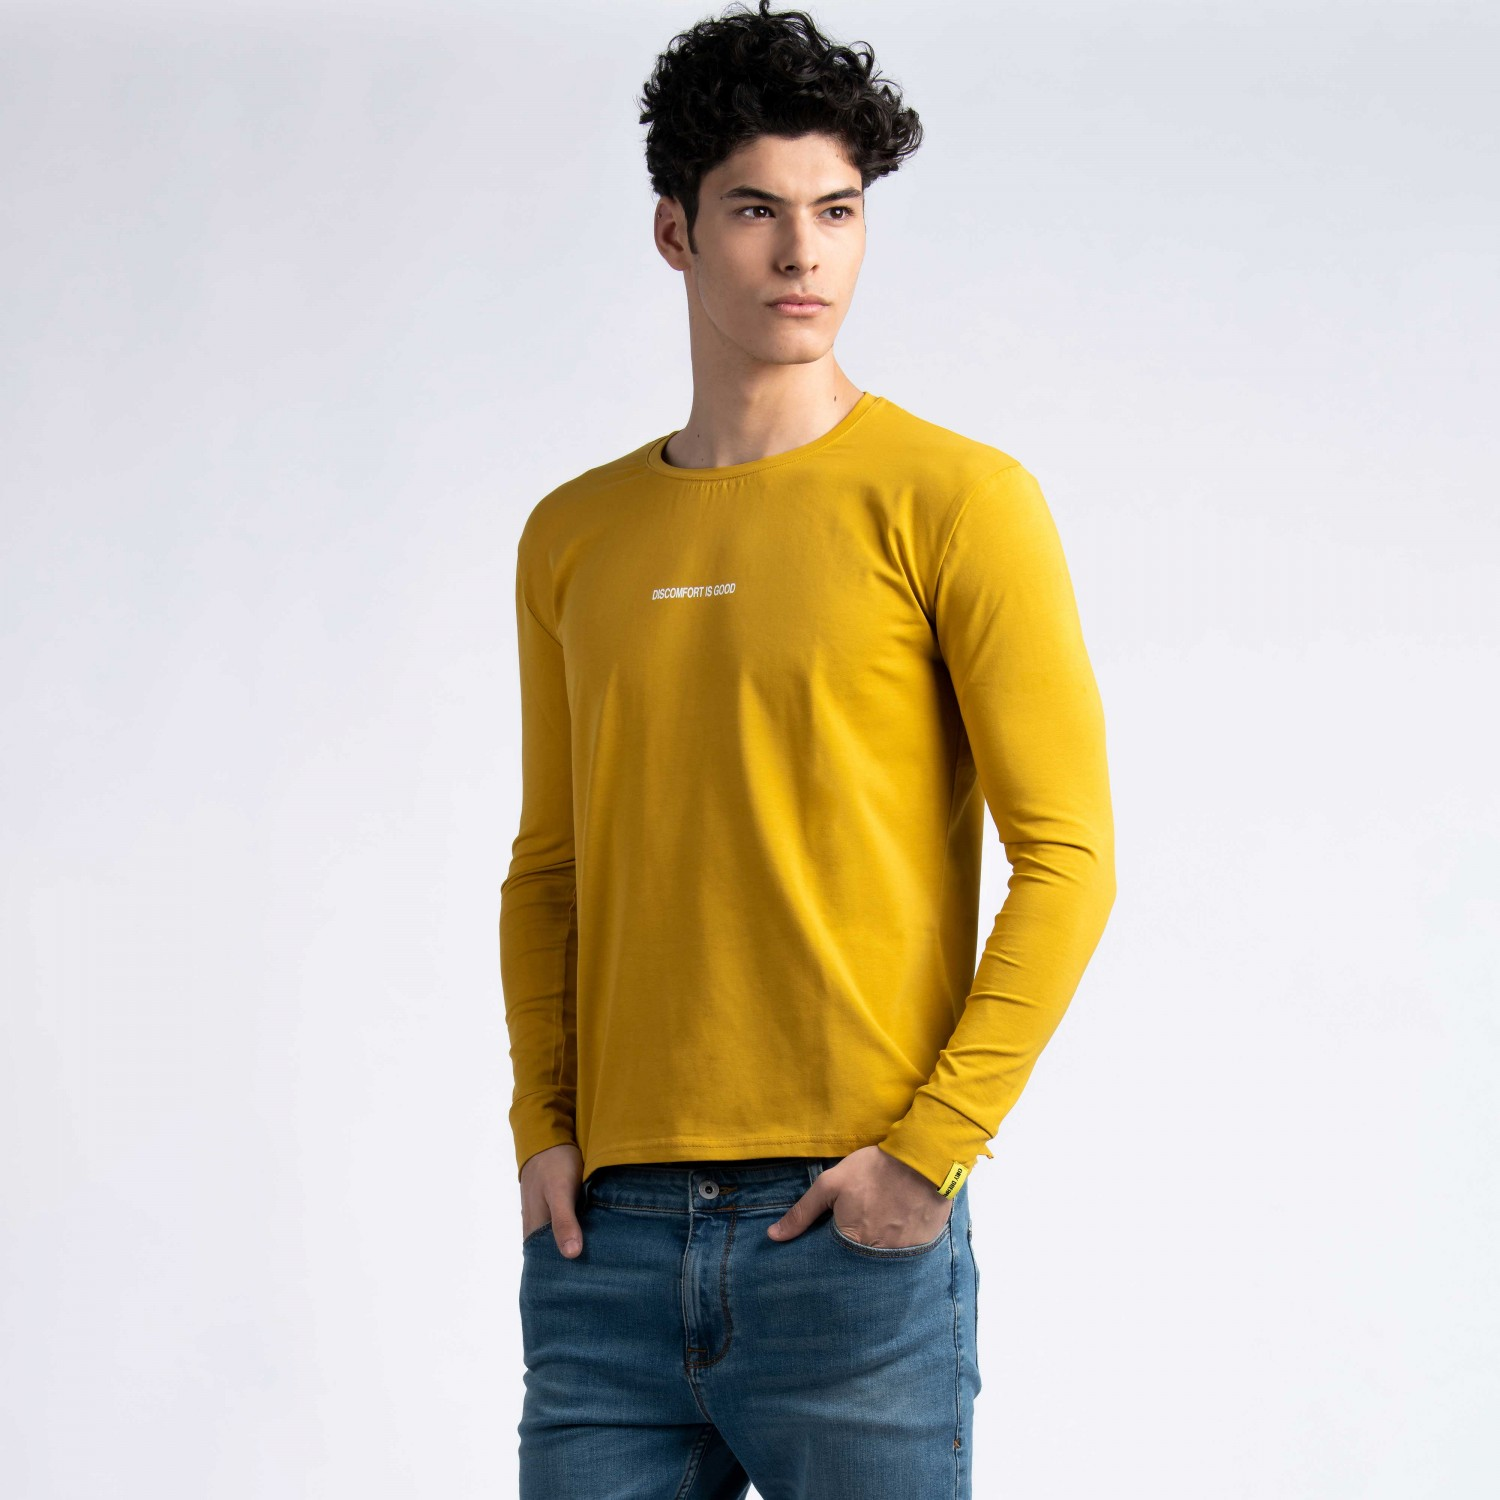 """Discomfort Is Good"" Long Sleeve T-Shirt in Mustard"